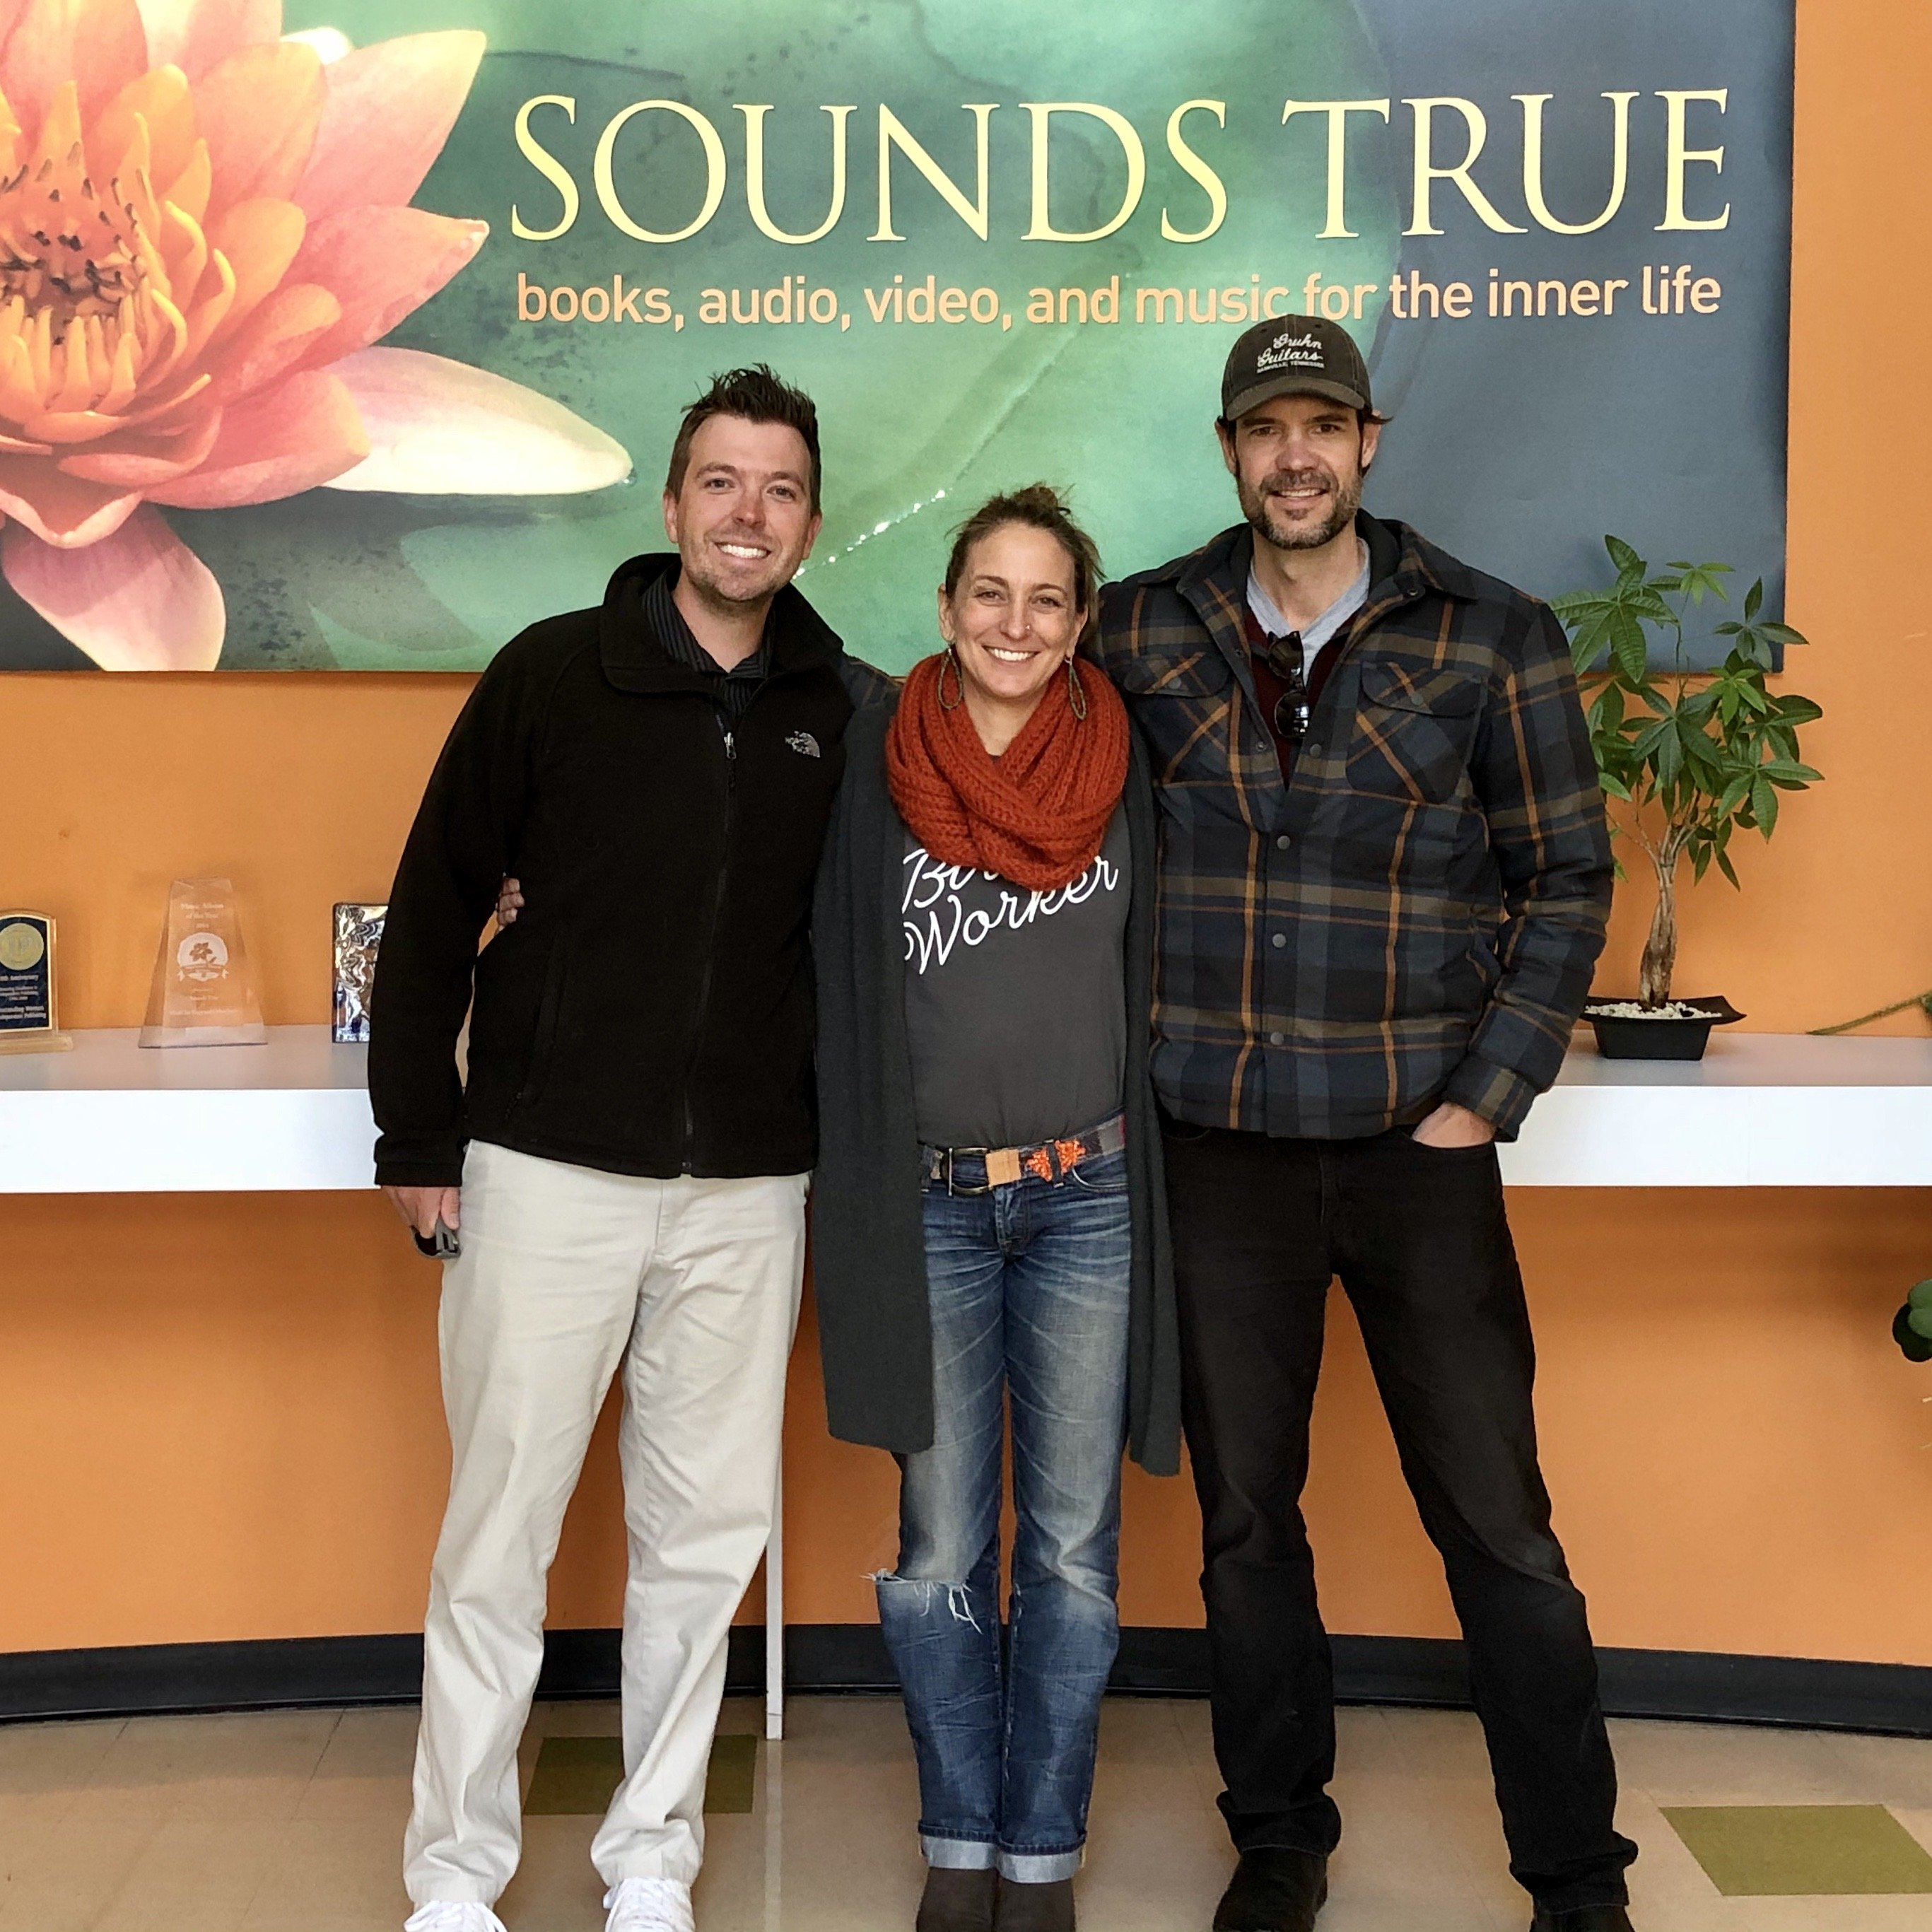 In the front lobby of Sounds True with Jeff and Matt.